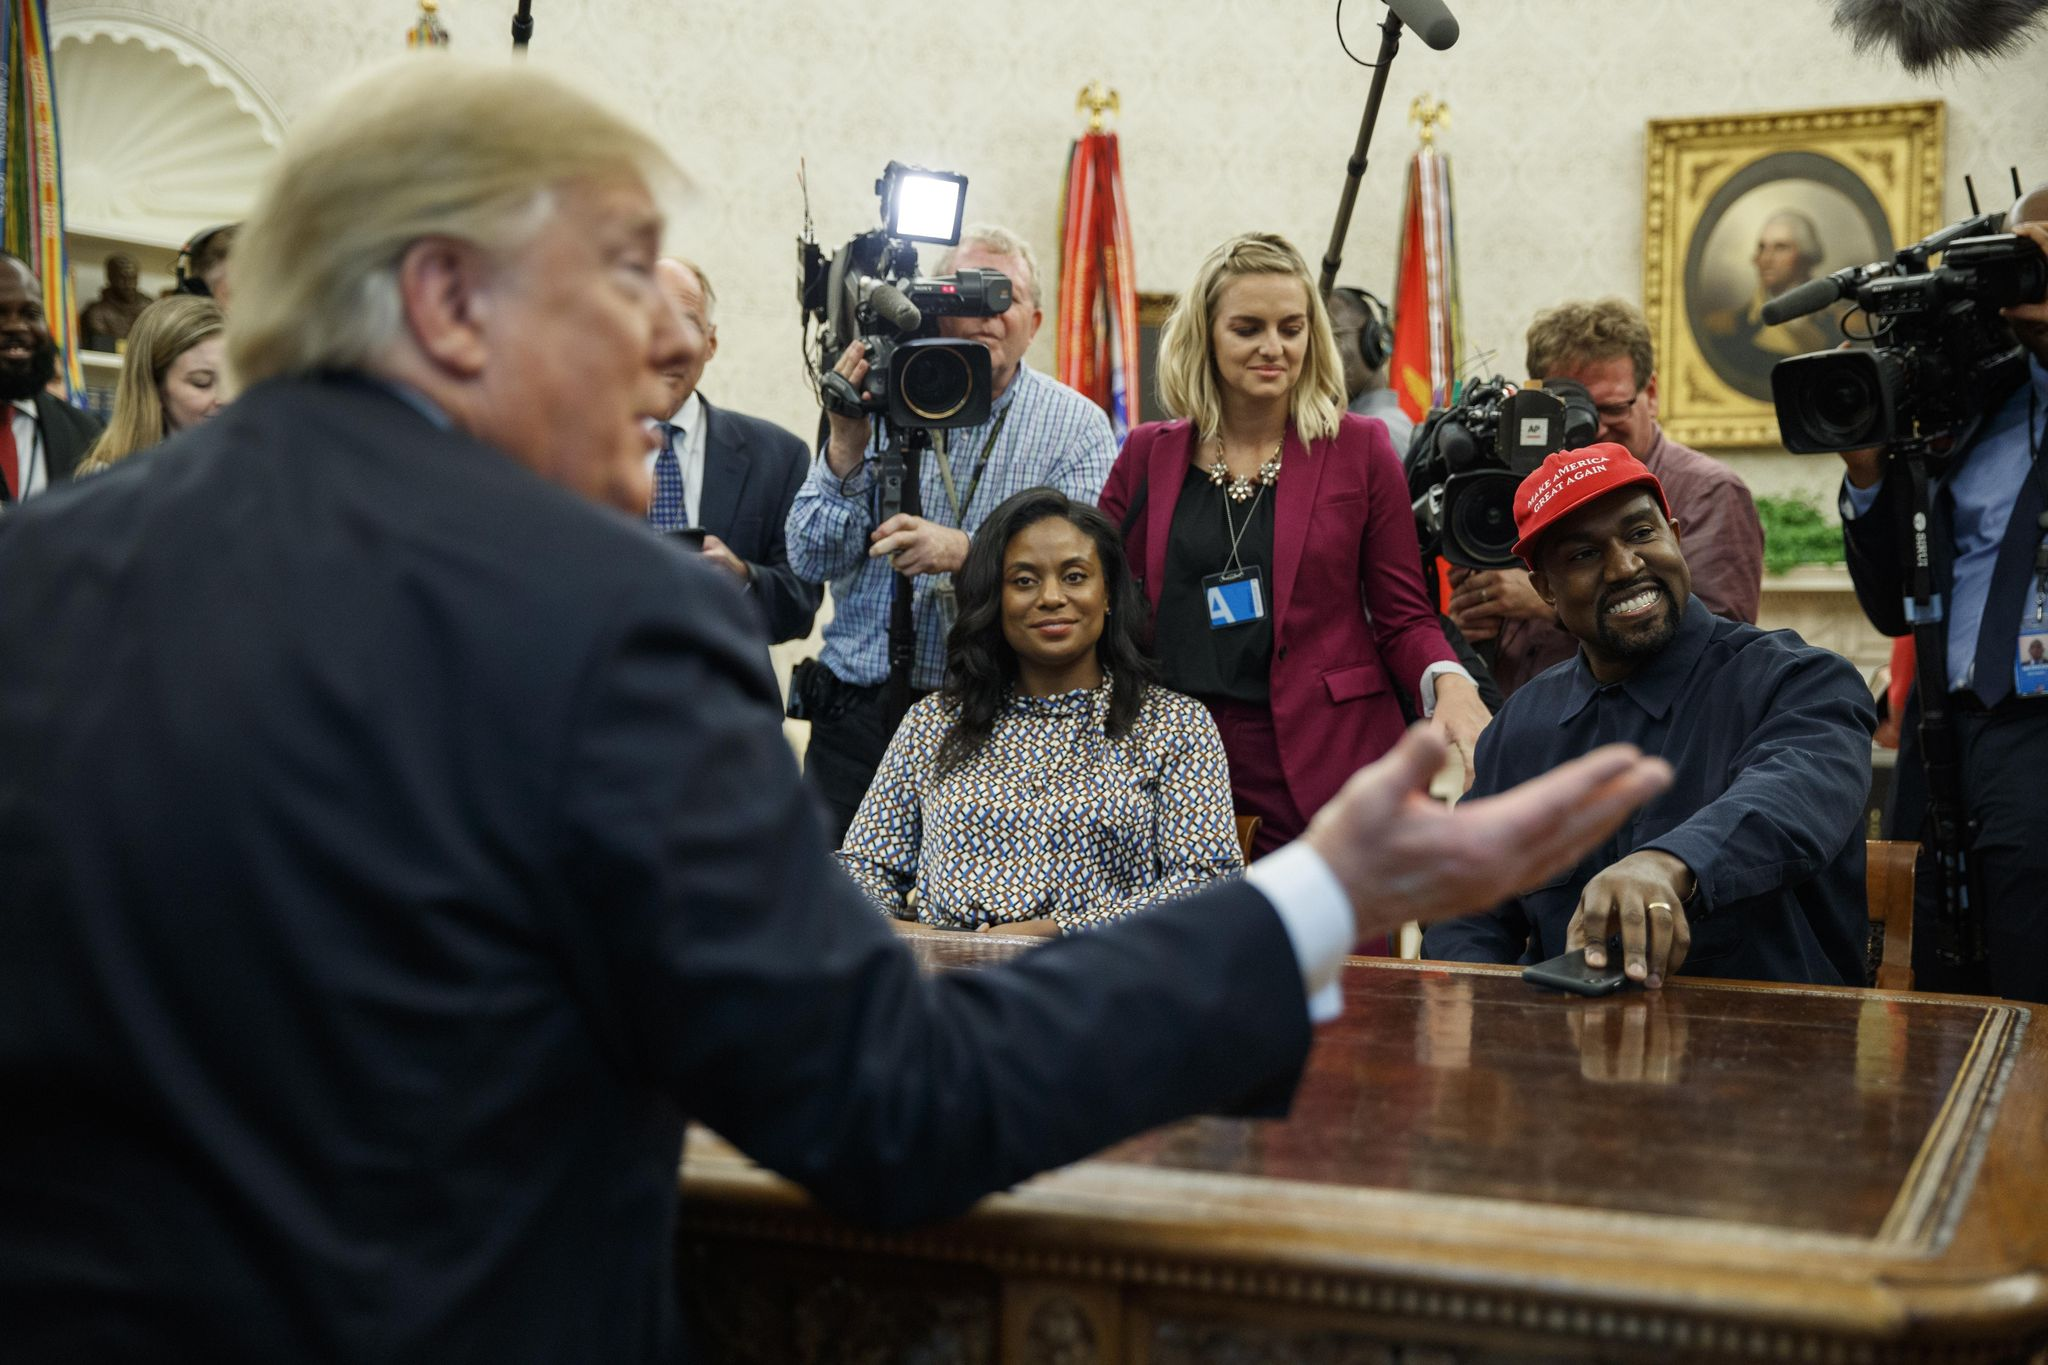 Kanye West: Trump is on a 'hero's journey' for America